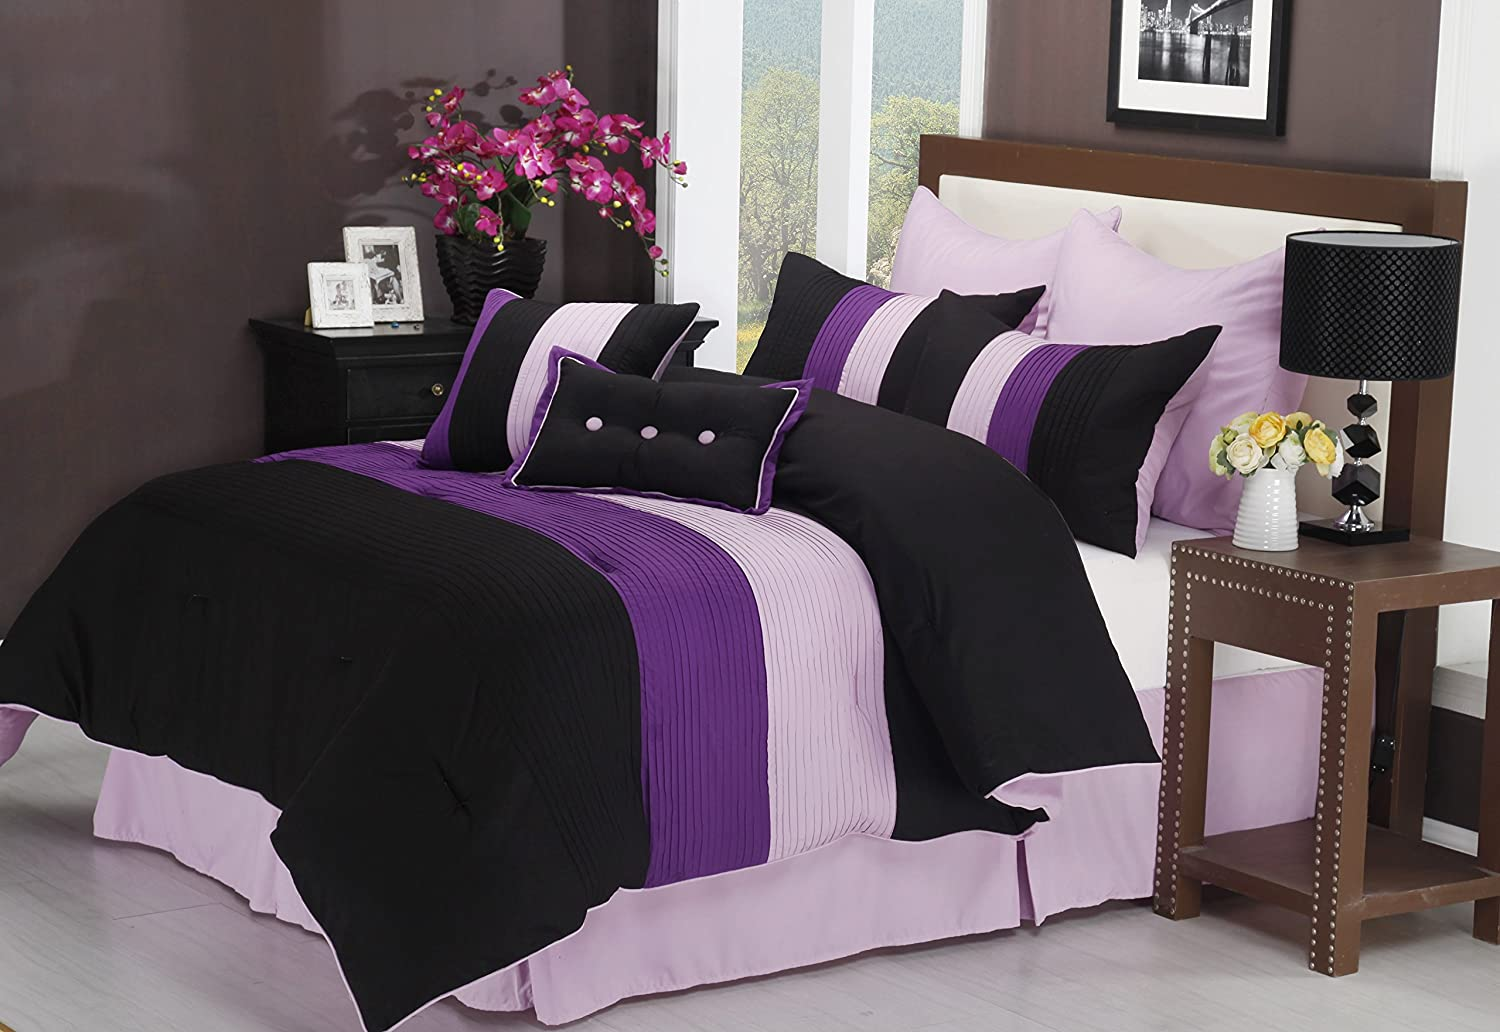 Impressions 8-Piece Luxurious Comforter Full Set, Florence, Purple